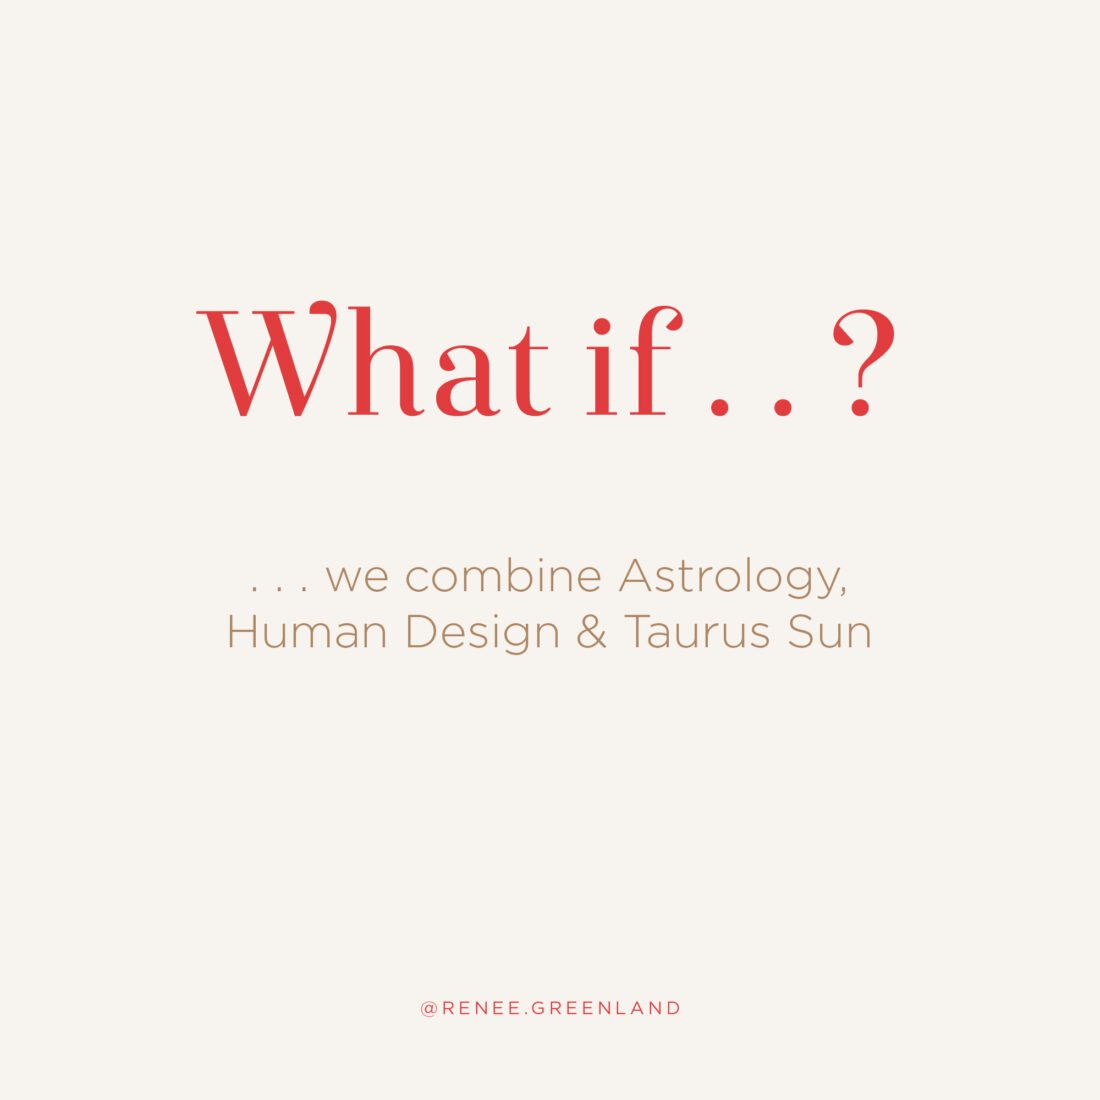 what if we combine astrology and human design